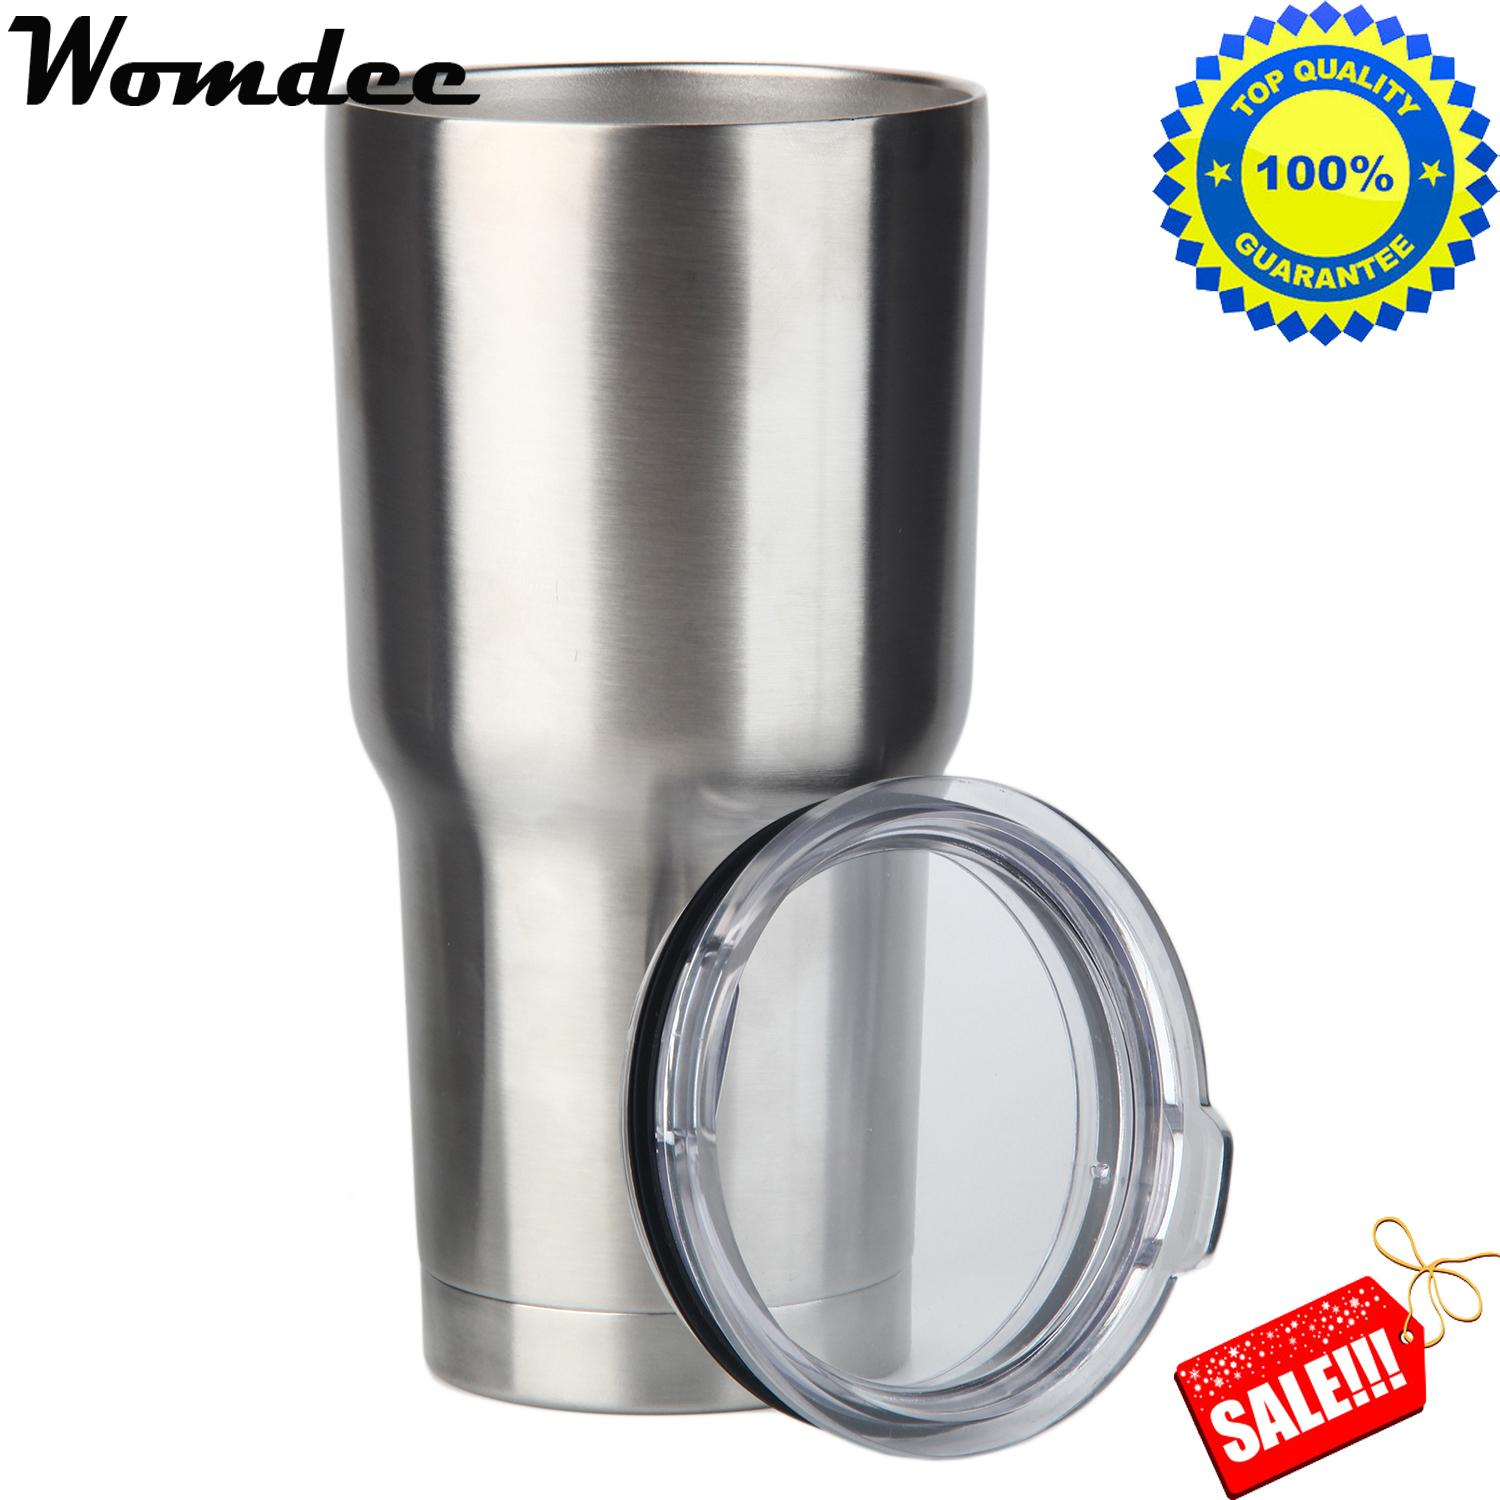 Womdee 30Oz Stainless Steel Tumbler With Lid Vacuum Insulated Tumblers Coffee Cup Double Wall Travel Mug Intl Womdee Discount